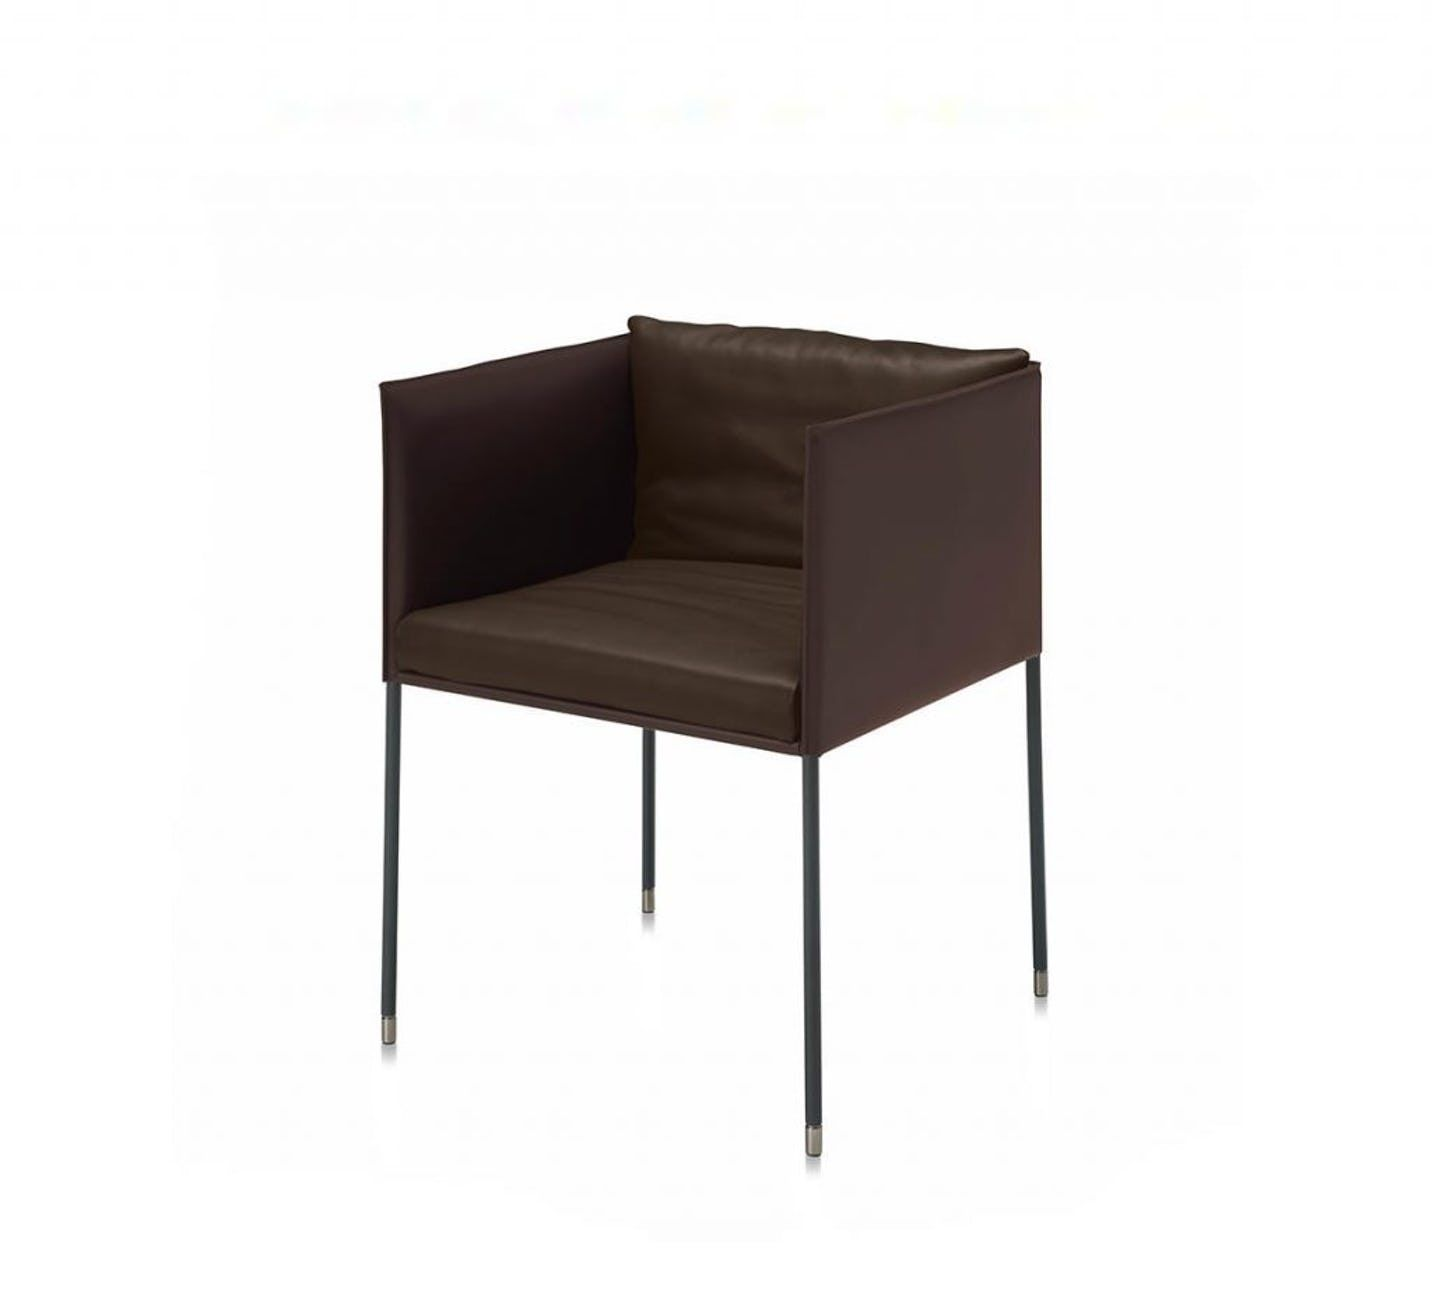 Best Picture Square Chair Design